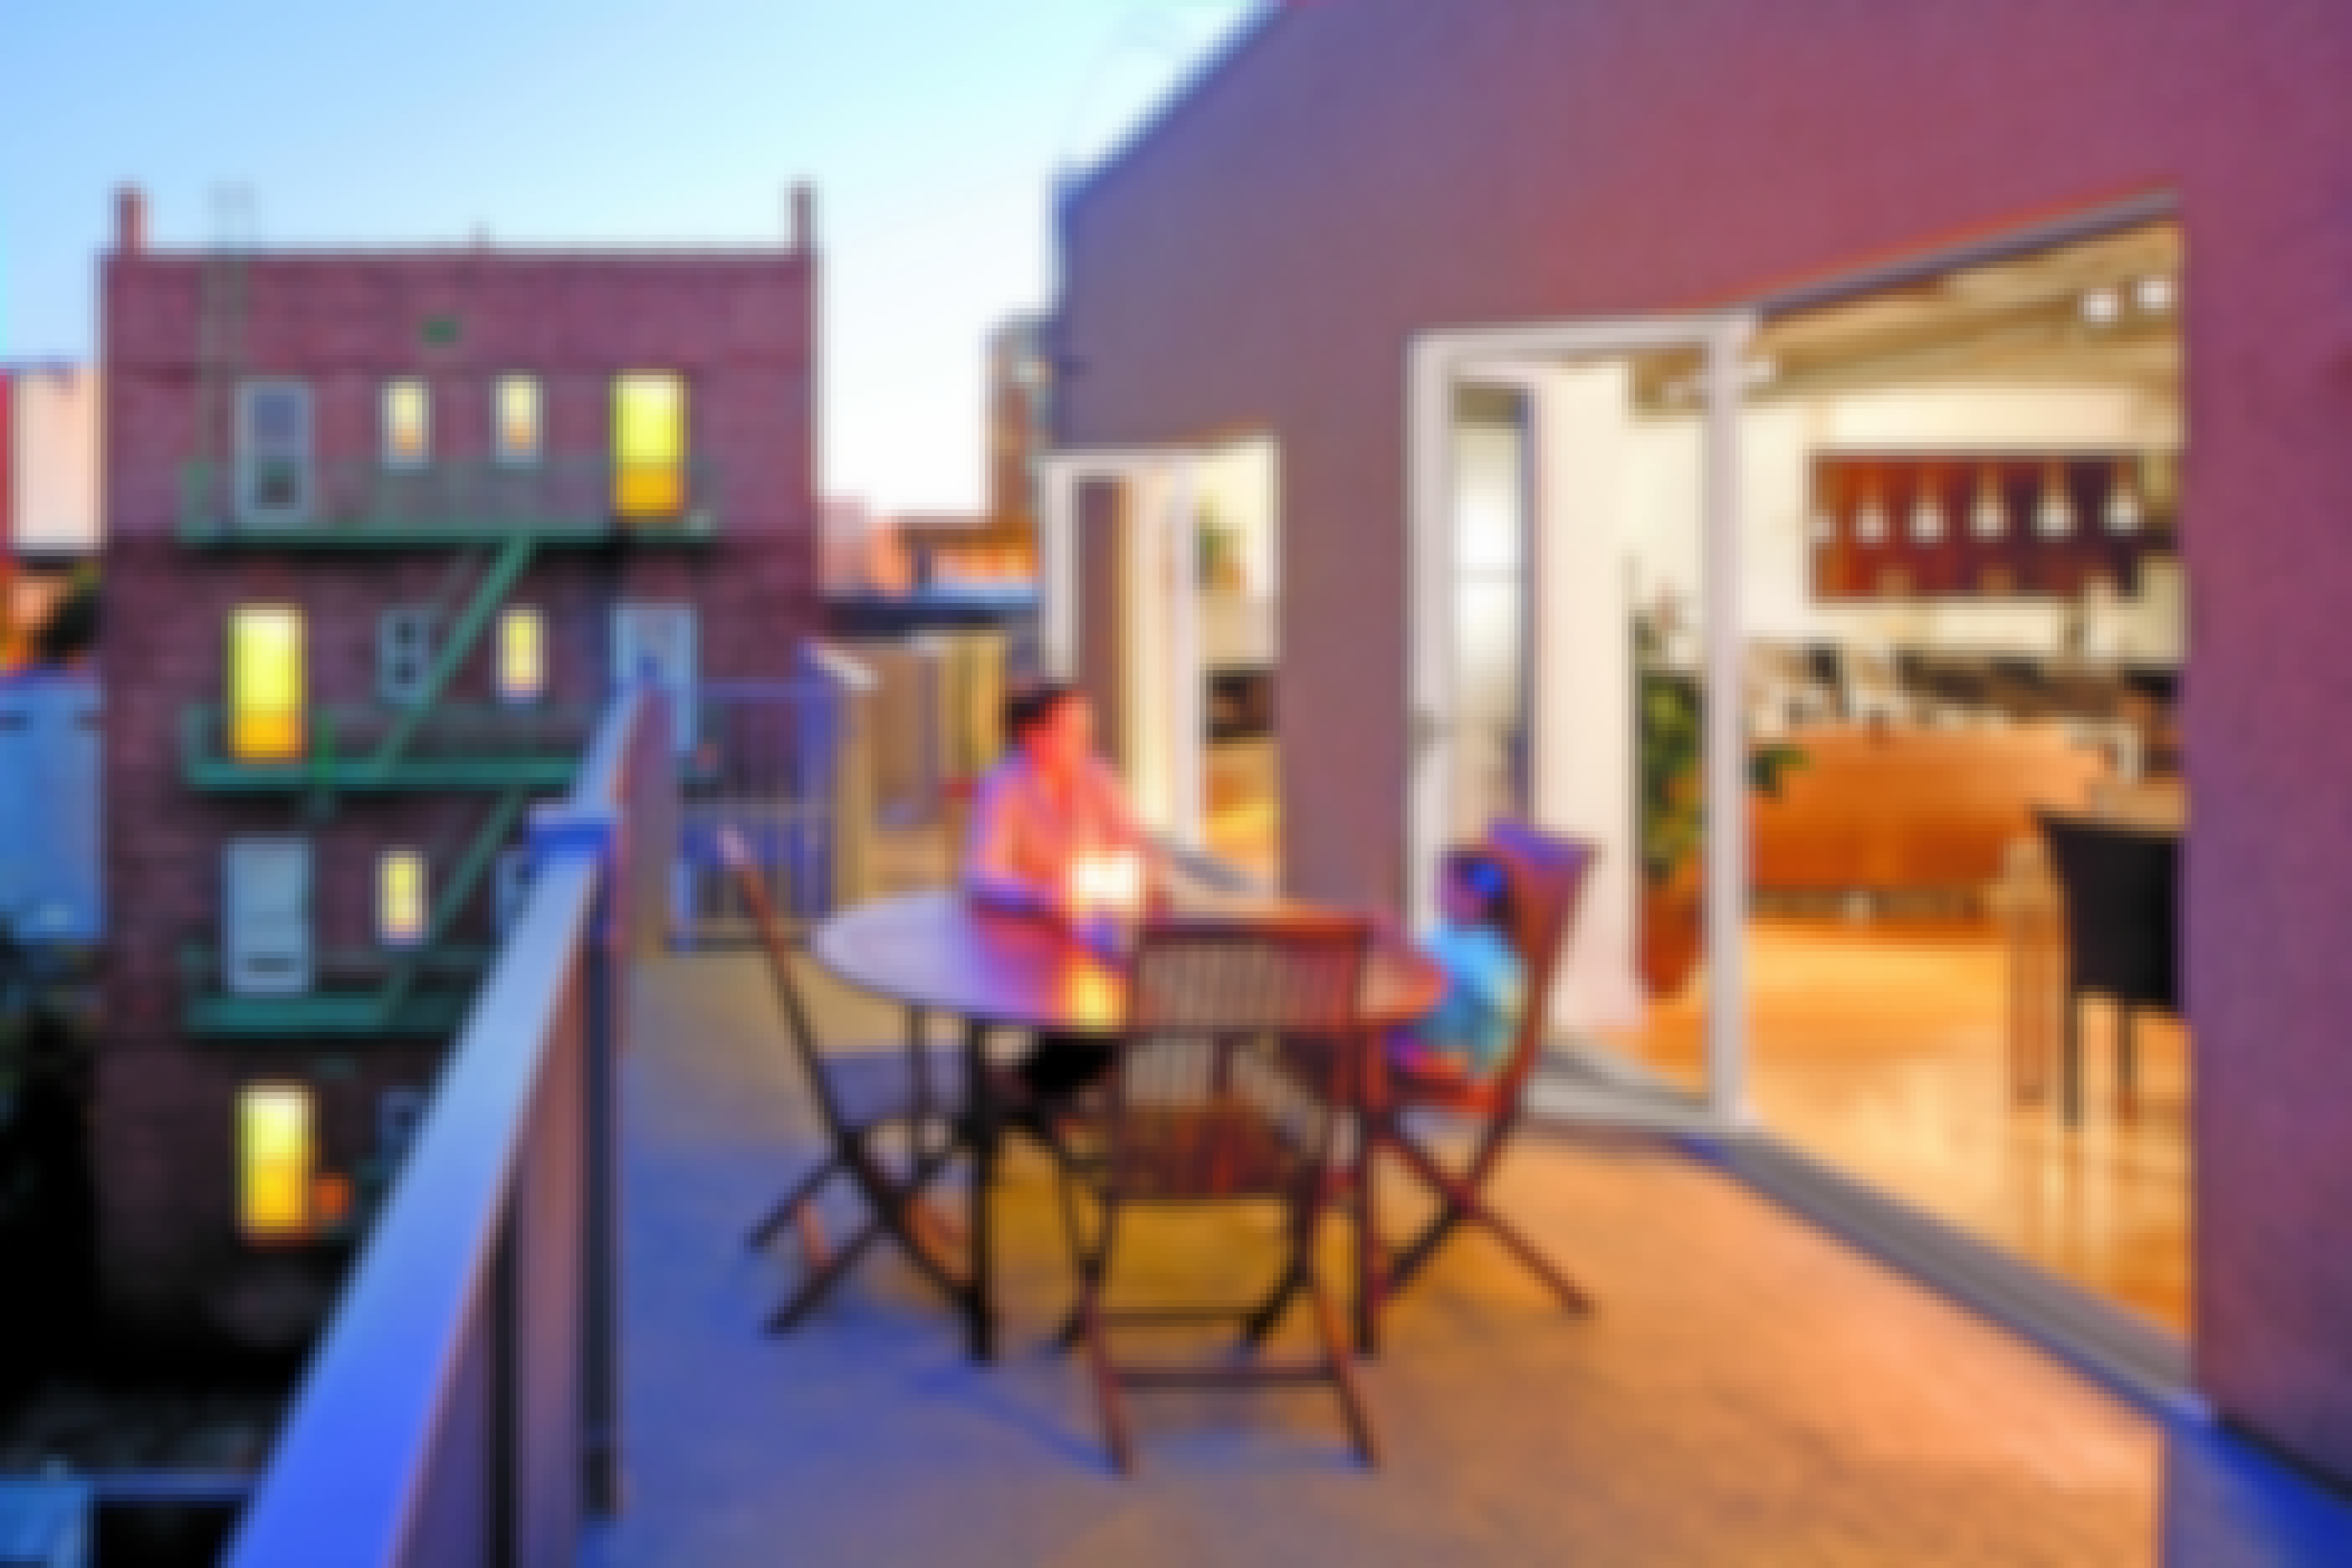 urban-multifamily-residential-deck-with-glass-walls-and-mother-and-child